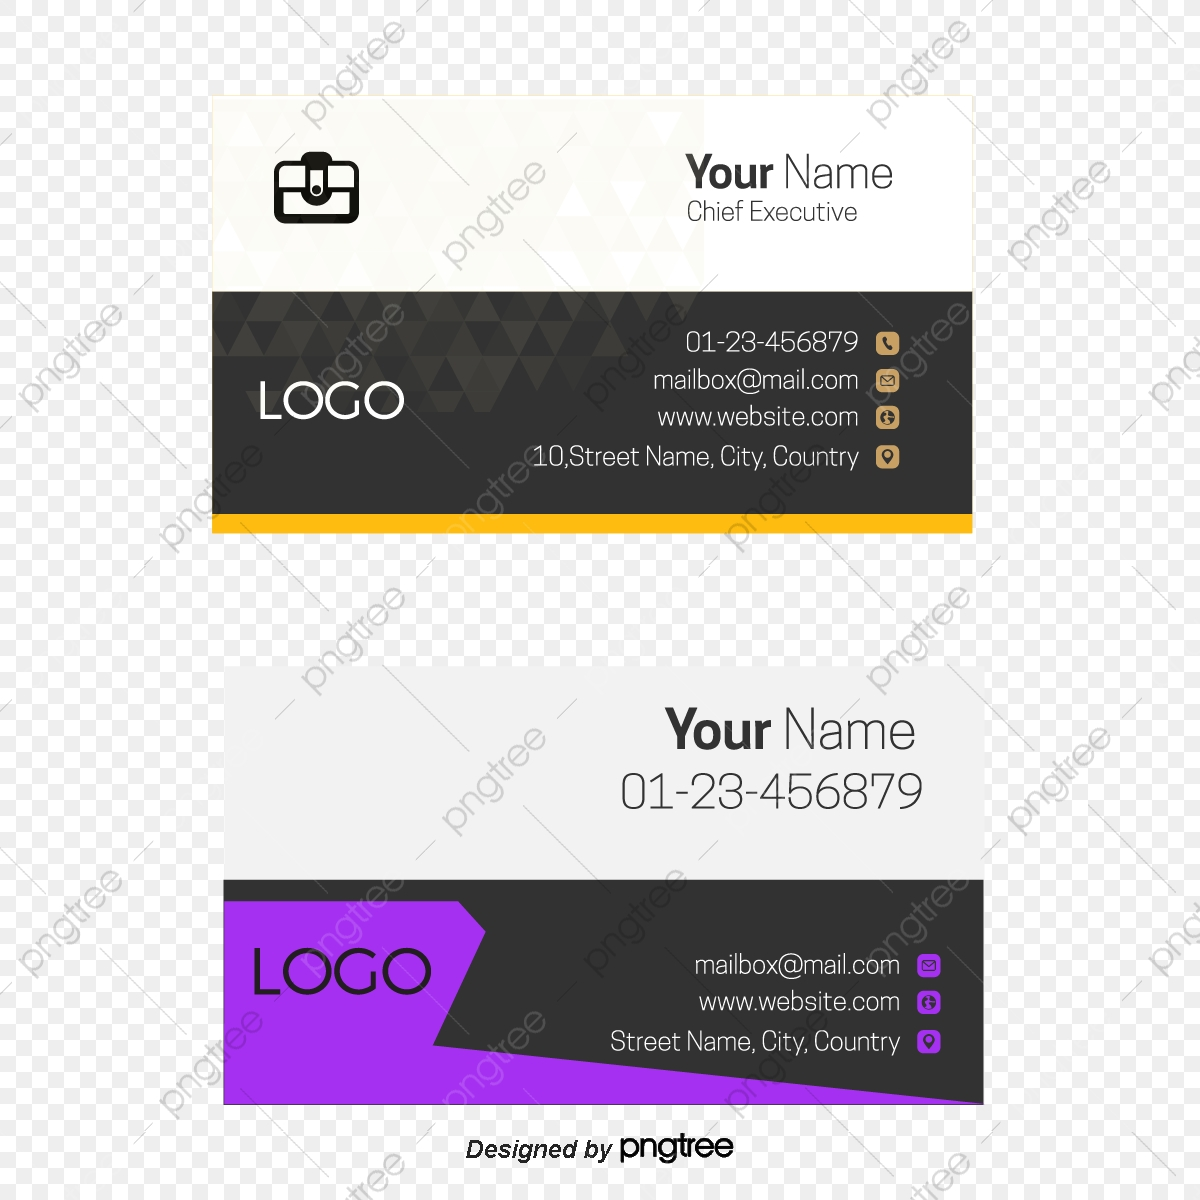 Vector Creative Business Card Design Fashion Business Cards Vector Business Card Personalized Business Cards Png And Vector With Transparent Background For Free Download